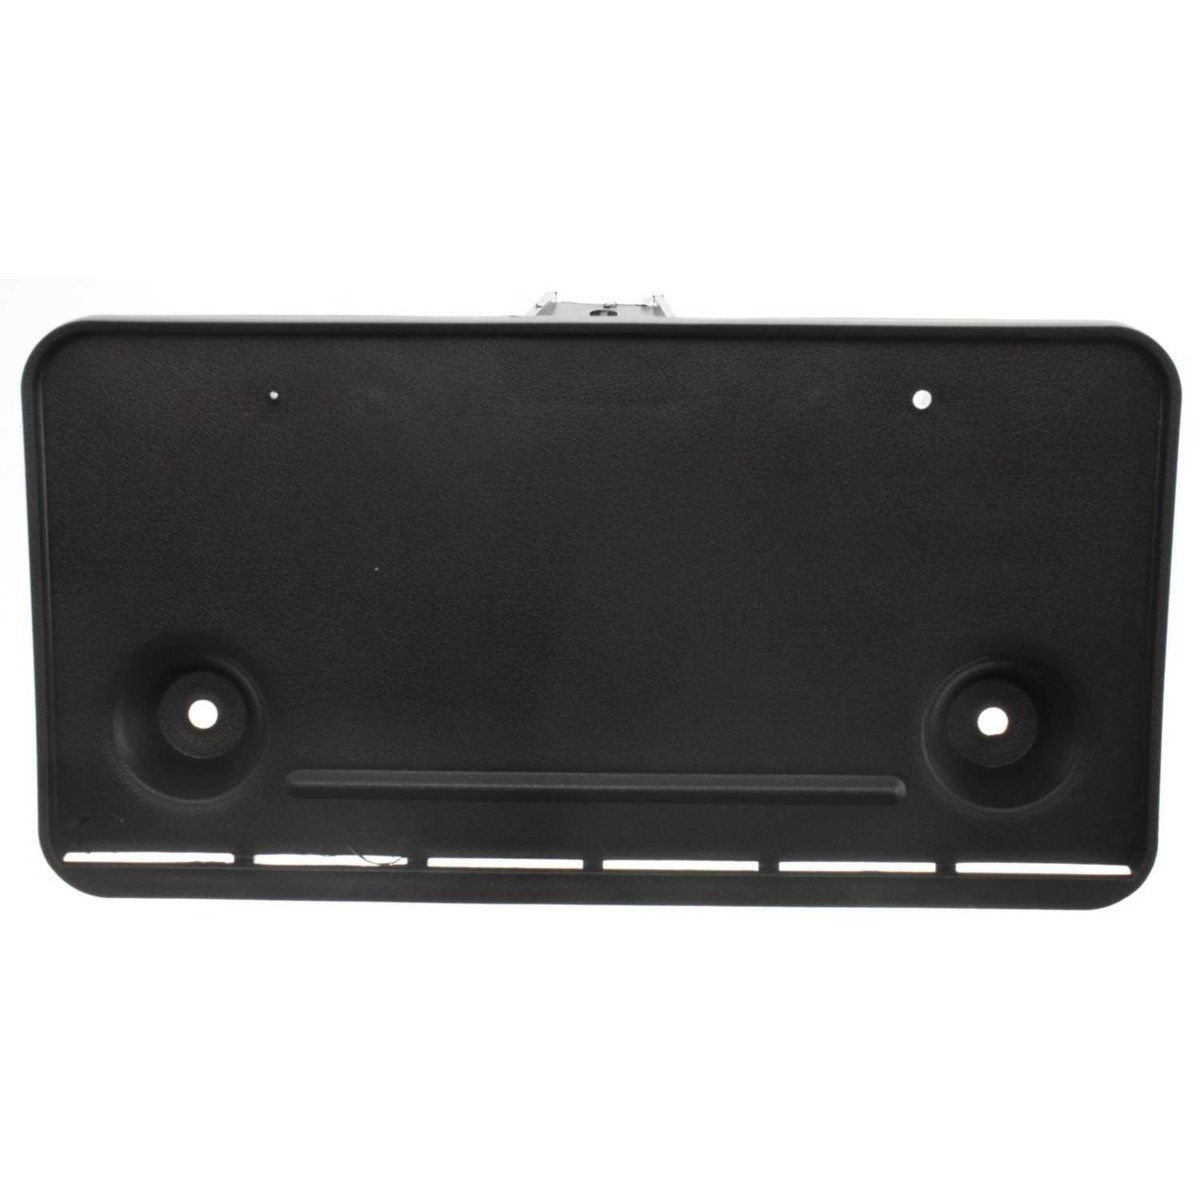 1992-1996 Ford Bronco F150 F250 F350 Front License Plate Tag Bracket Holder FO1068101 F2TZ17A385A OE Replacement